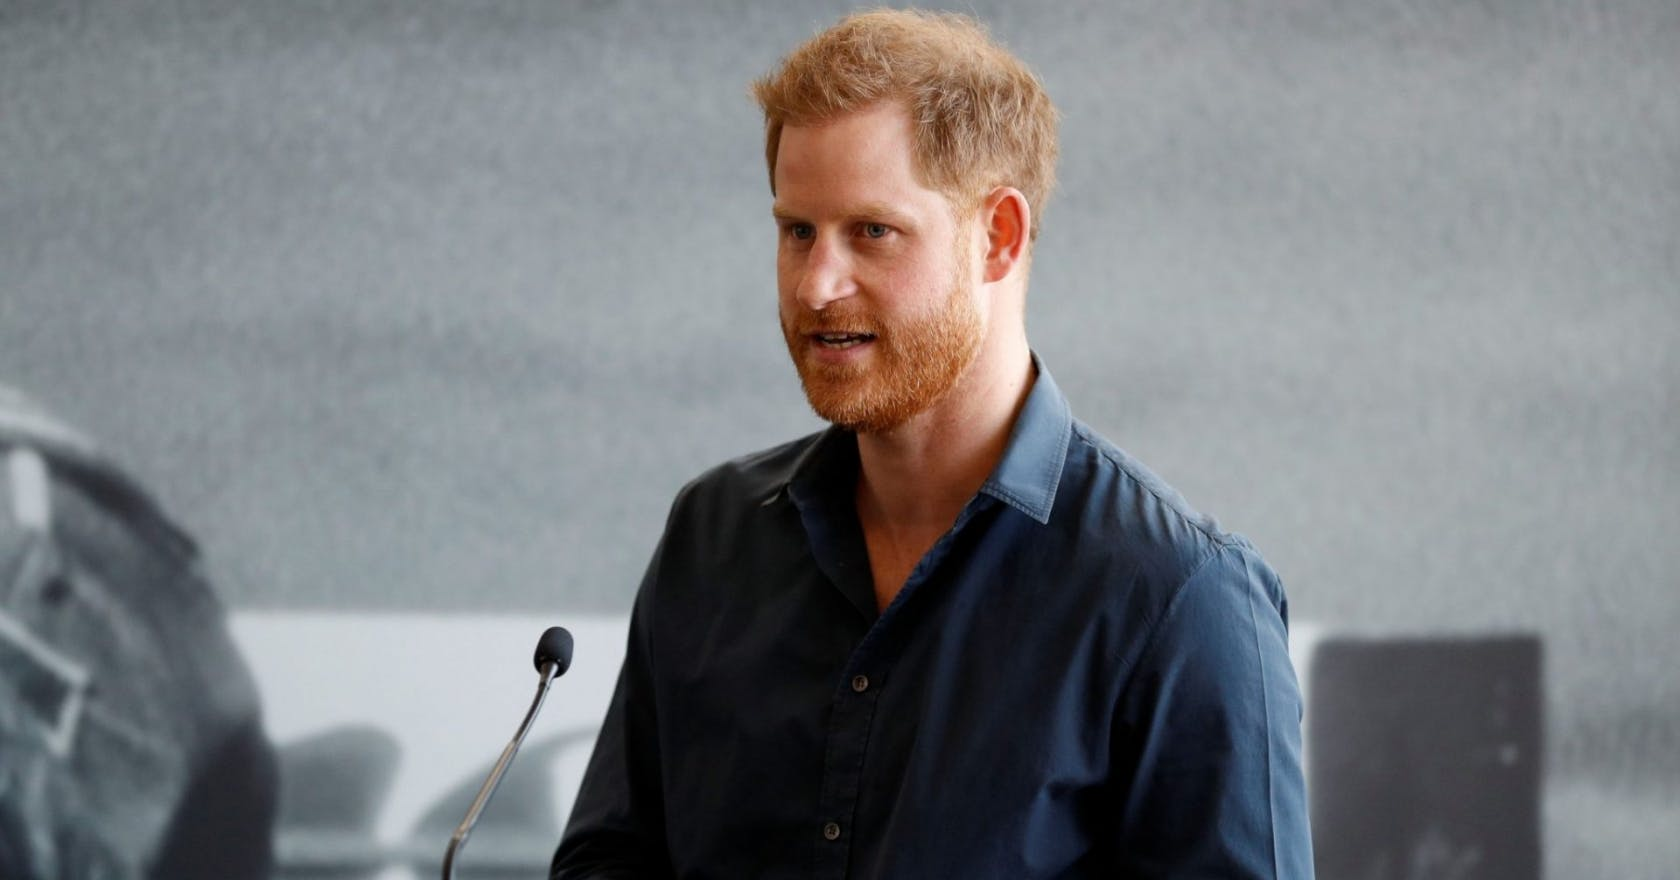 Prince Harry just highlighted the big problem with this toxic social media habit